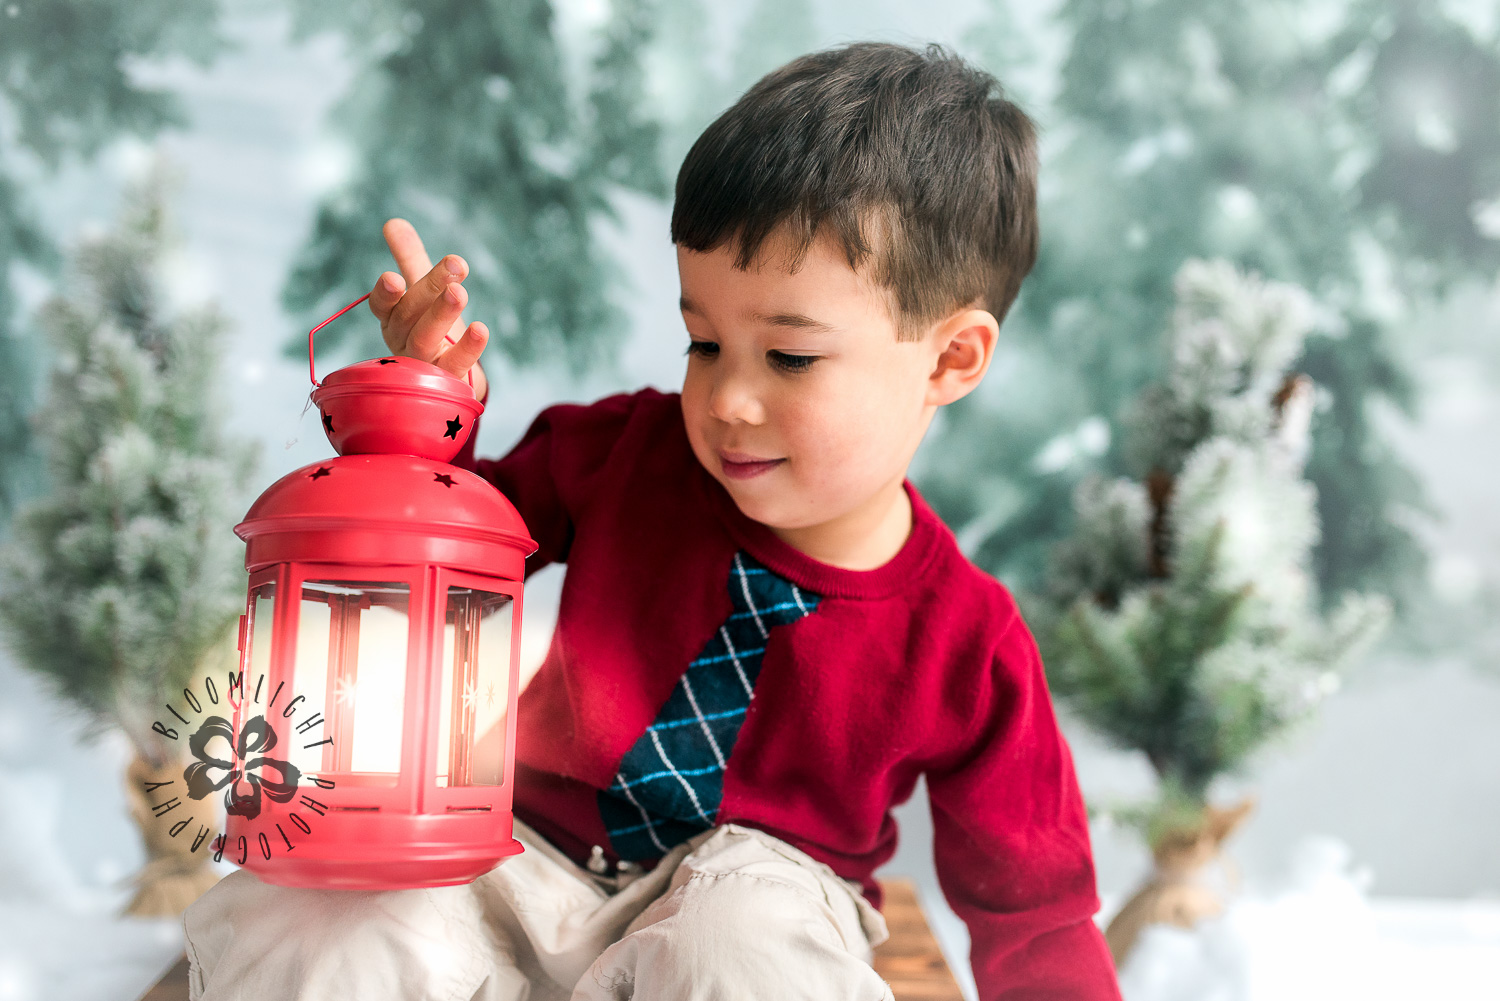 Toddler boy holding Lantern in a Christmas photo